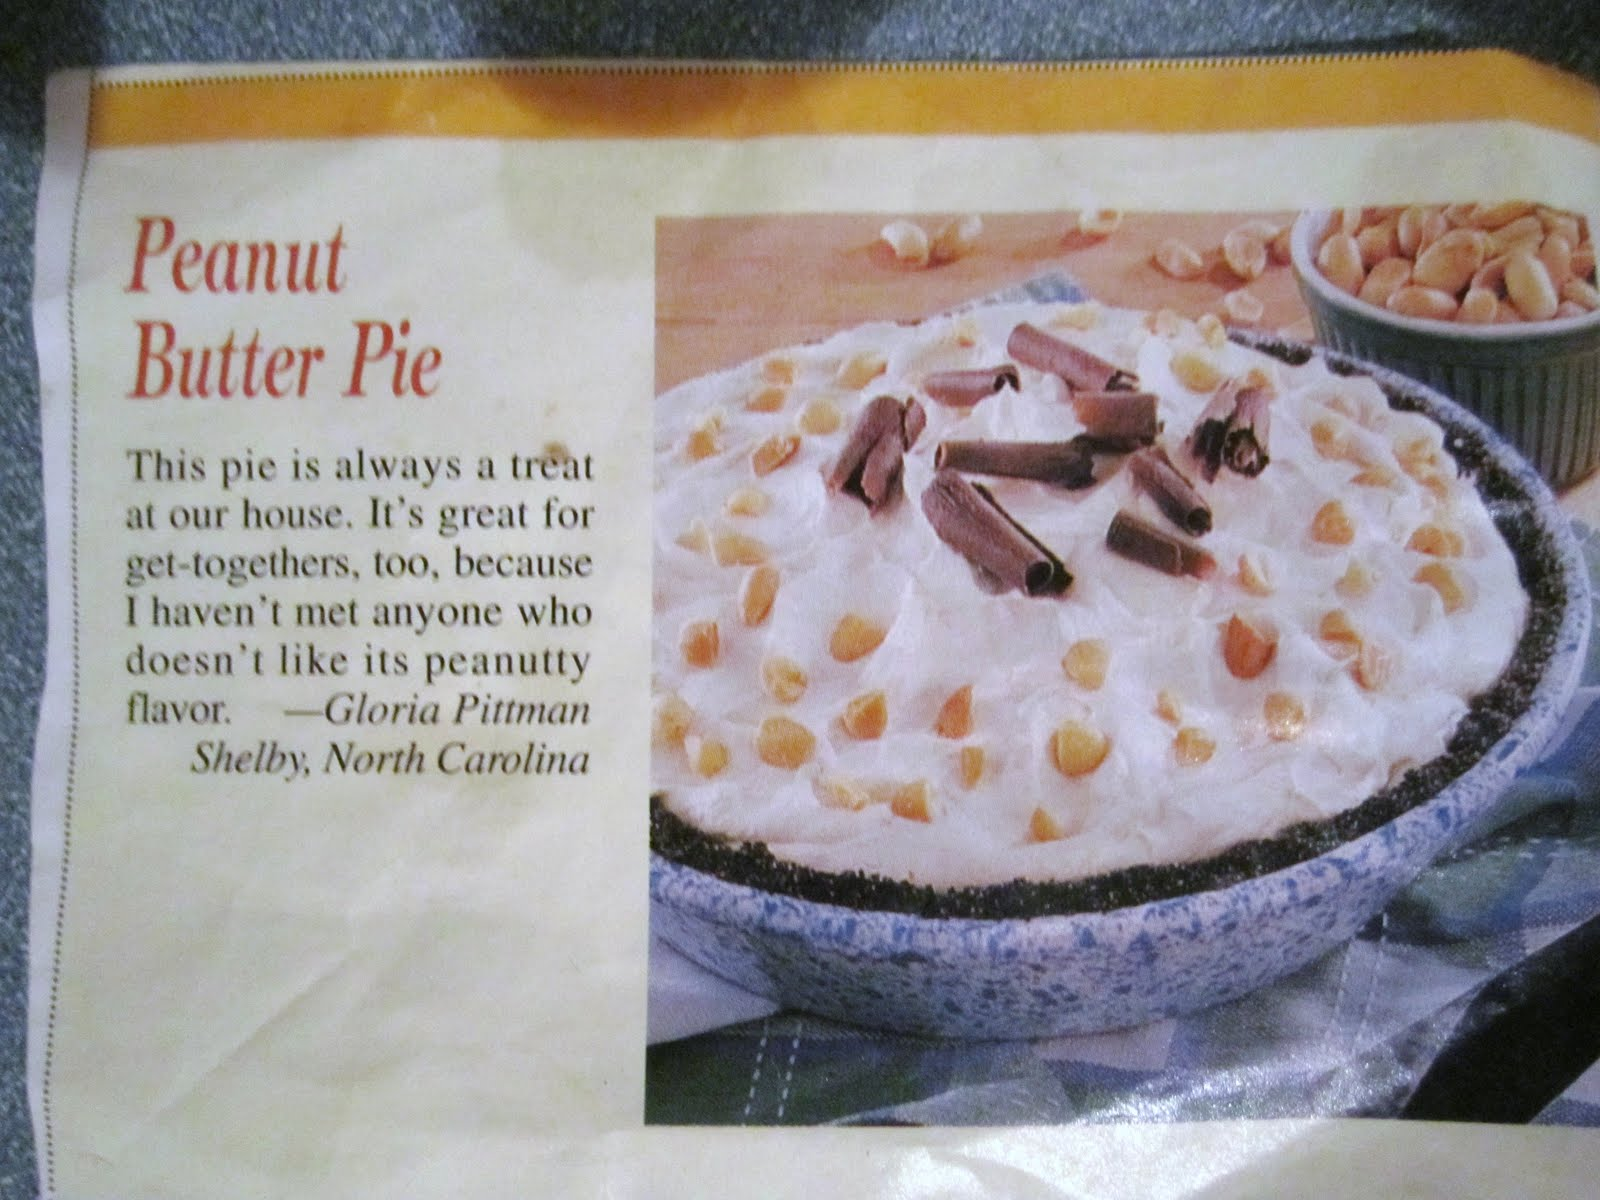 Pamplona: Frozen Peanut Butter Pie and Blueberry Cheesecake